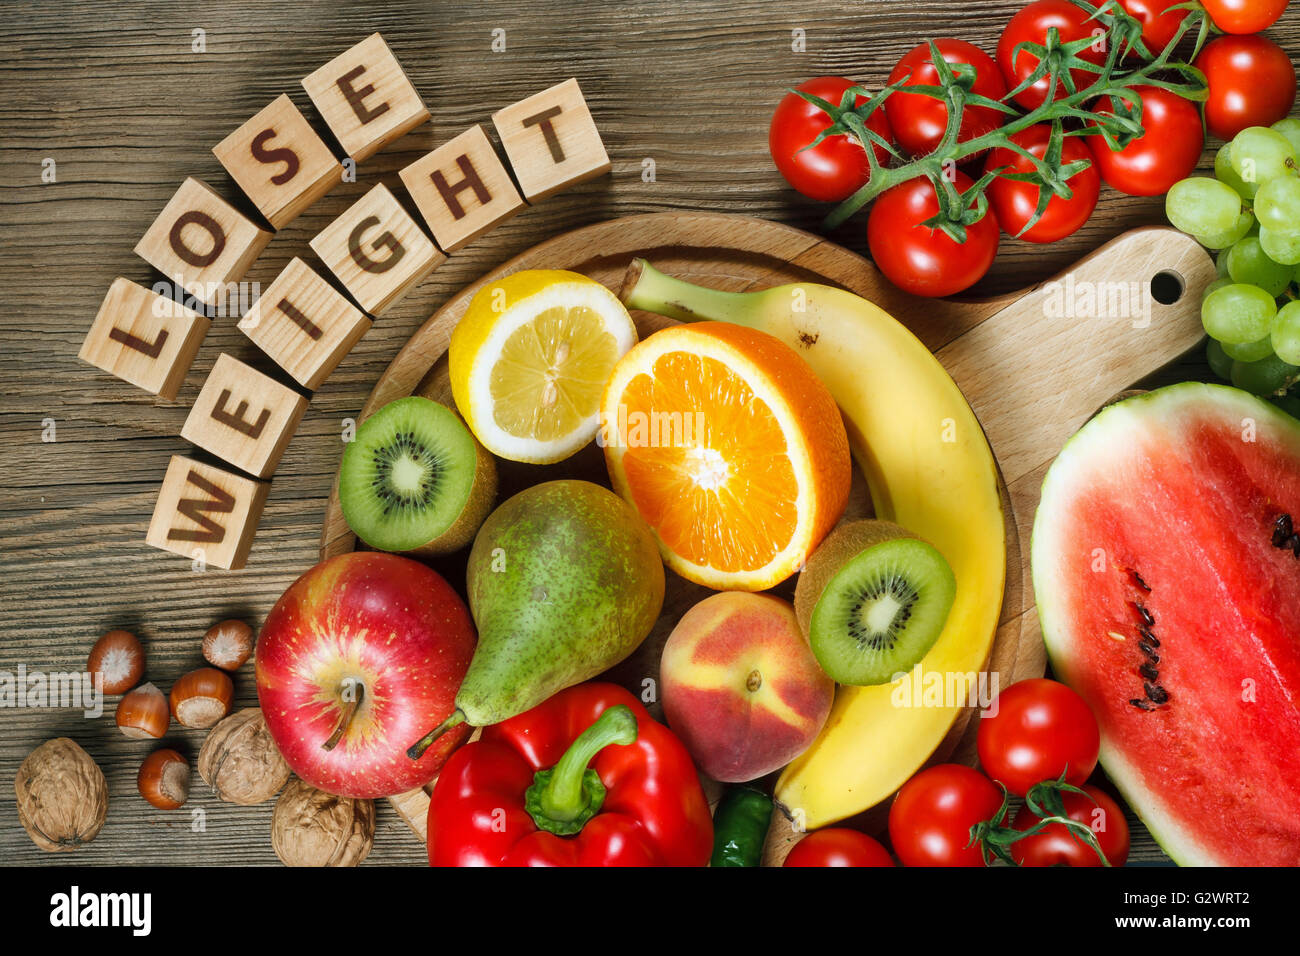 Diet concept. Natural products rich in vitamins as oranges, lemons, red pepper, kiwi, tomatoes, bananas, pears, - Stock Image